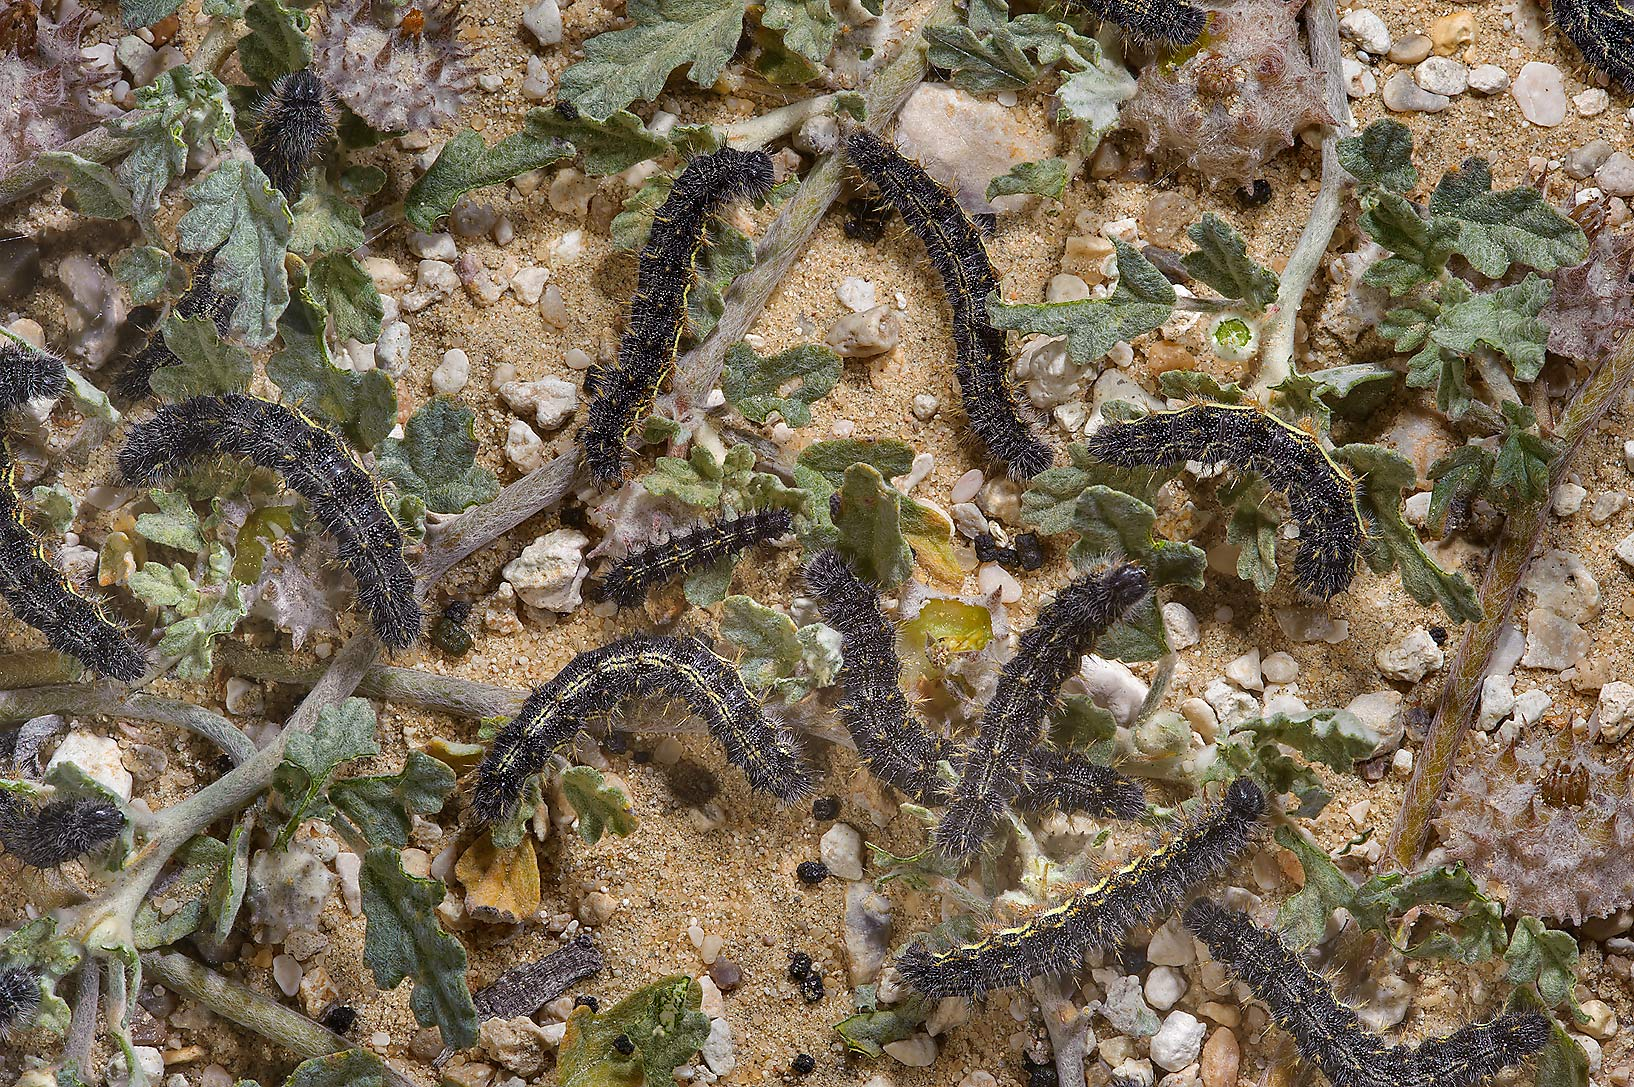 Black caterpillars eating Sand button (creeping...road to Saudi Arabia in southern Qatar